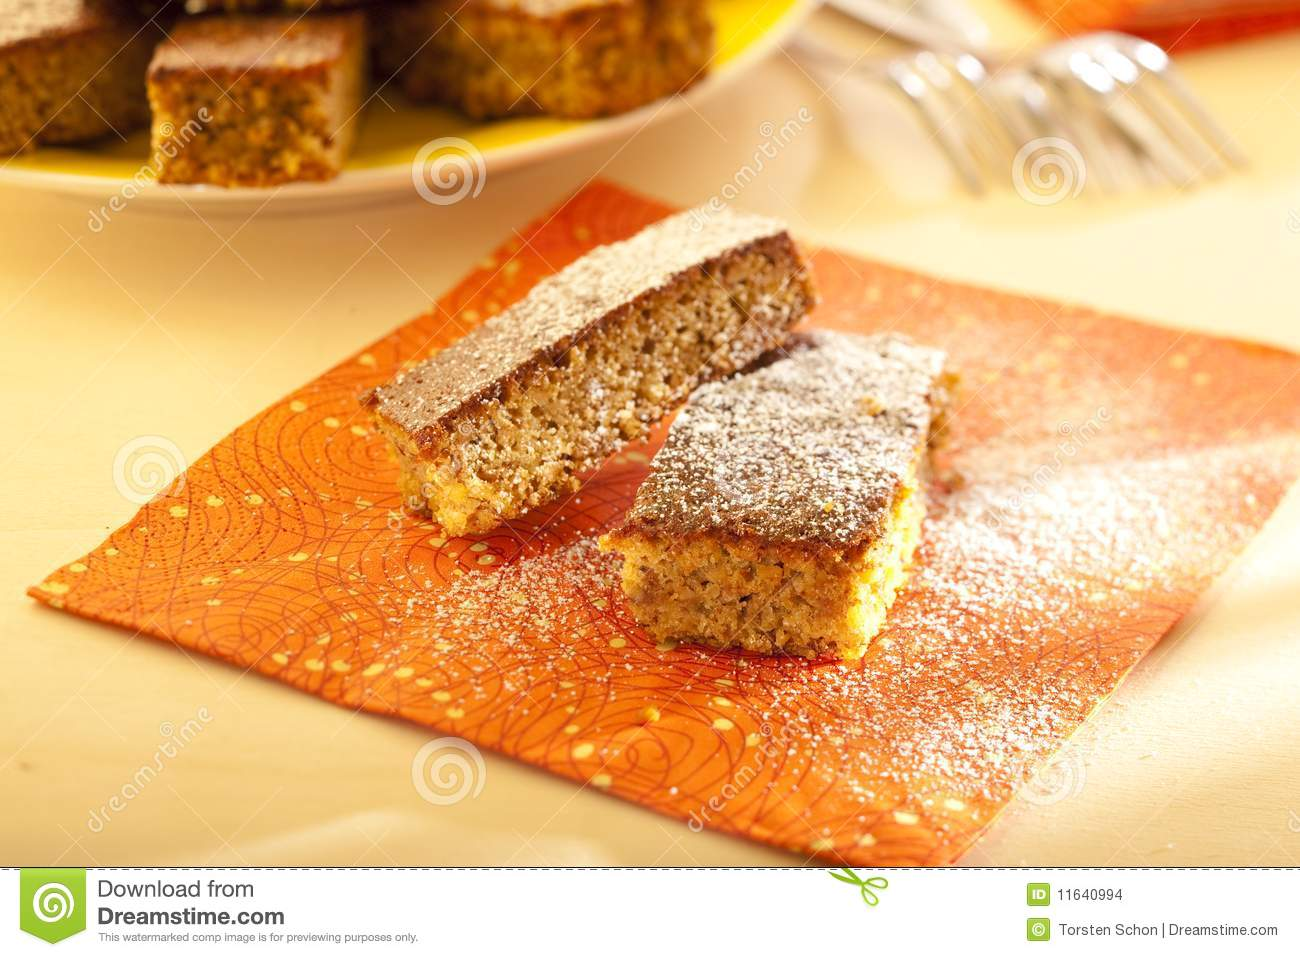 Gingerbread Cake Stock Images - Image: 11640994